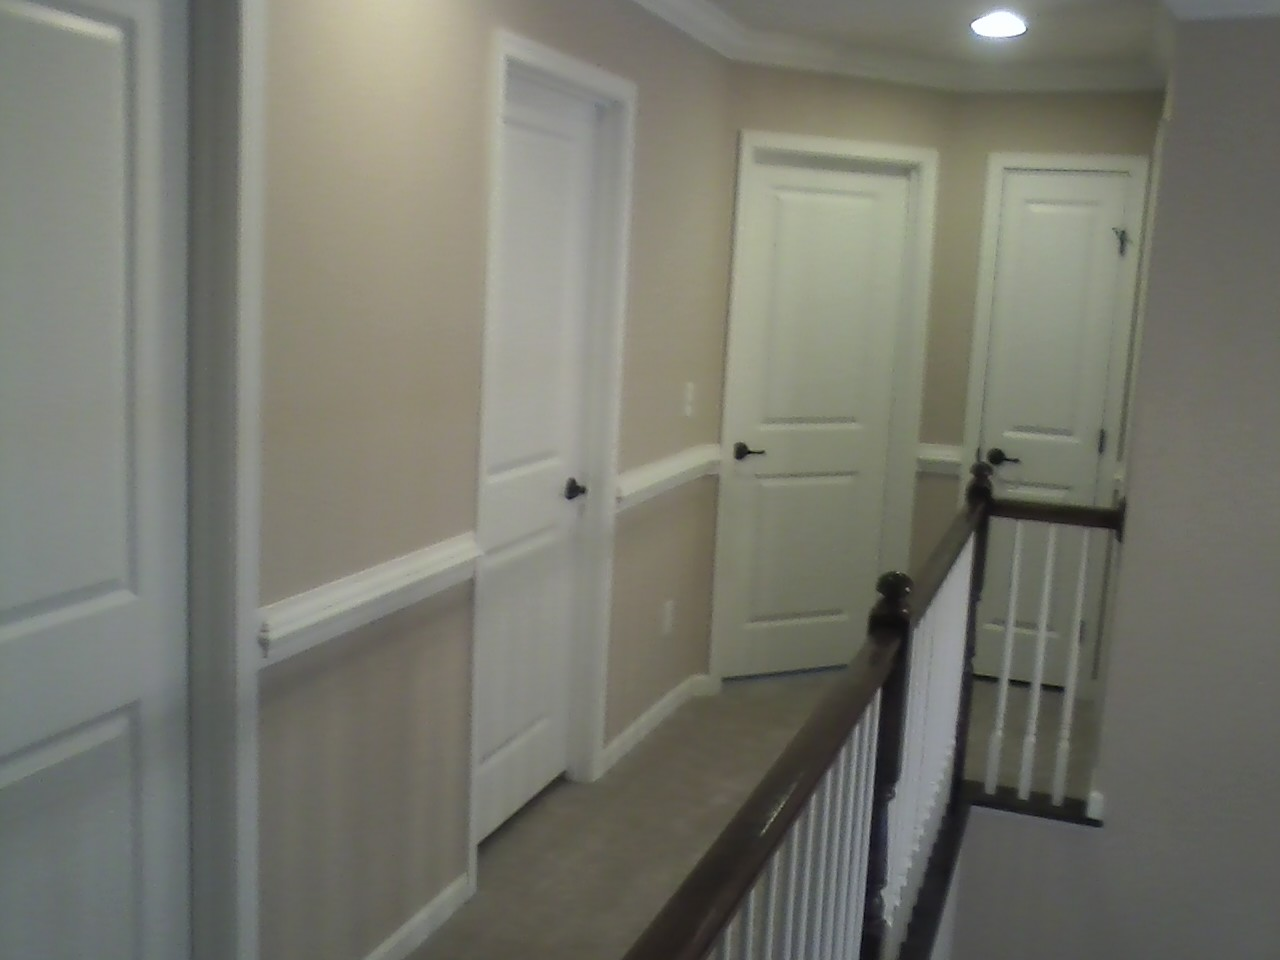 Superieur We Decided To Try Our Hand At Chair Rail In The Upstairs Hallway, Going  Down The Stairs Case Wall And Into The Foyer, We Finished The Upstairs, ...